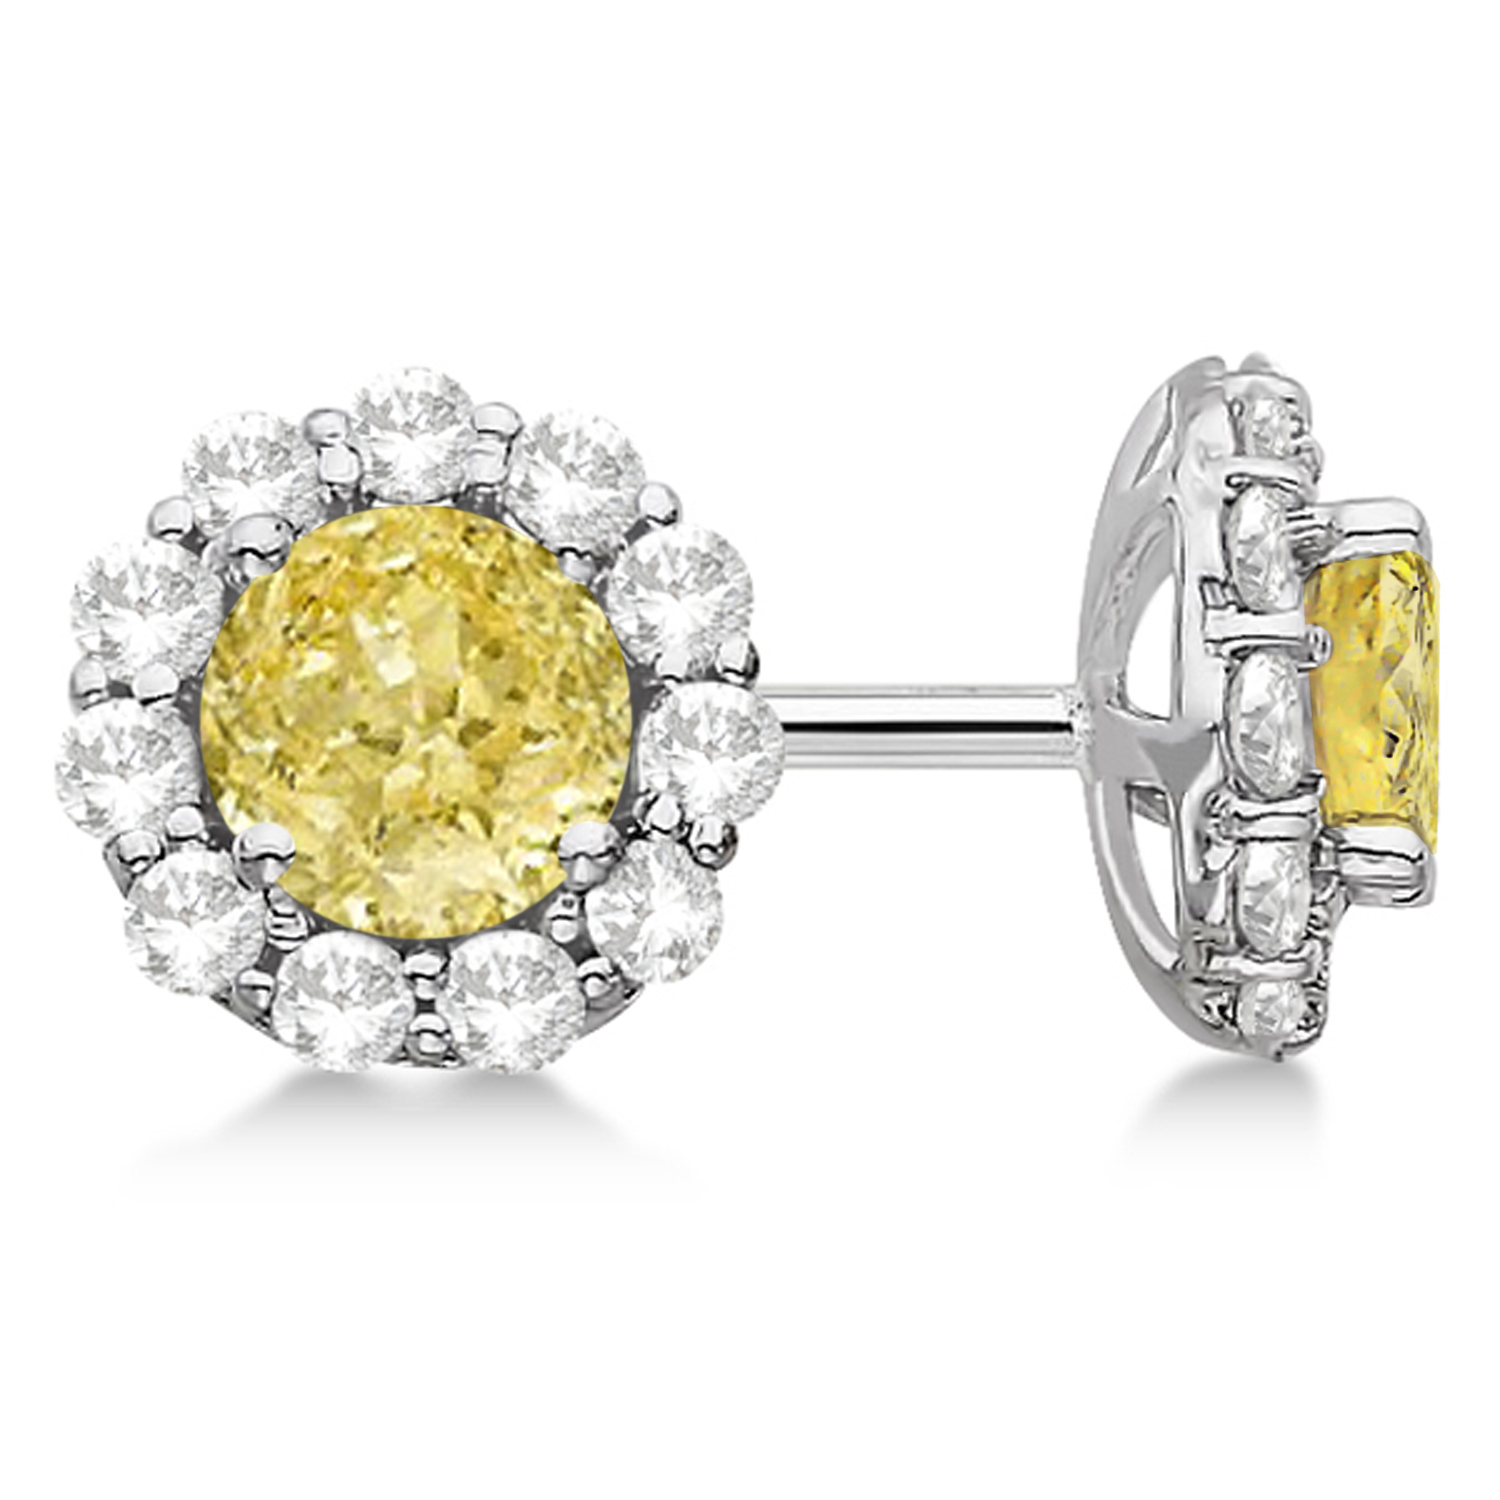 oval silver gem from hn set stone st honey stud ss with earrings sterling canary diamond product topaz rakuten ov king swarovski wrc shop